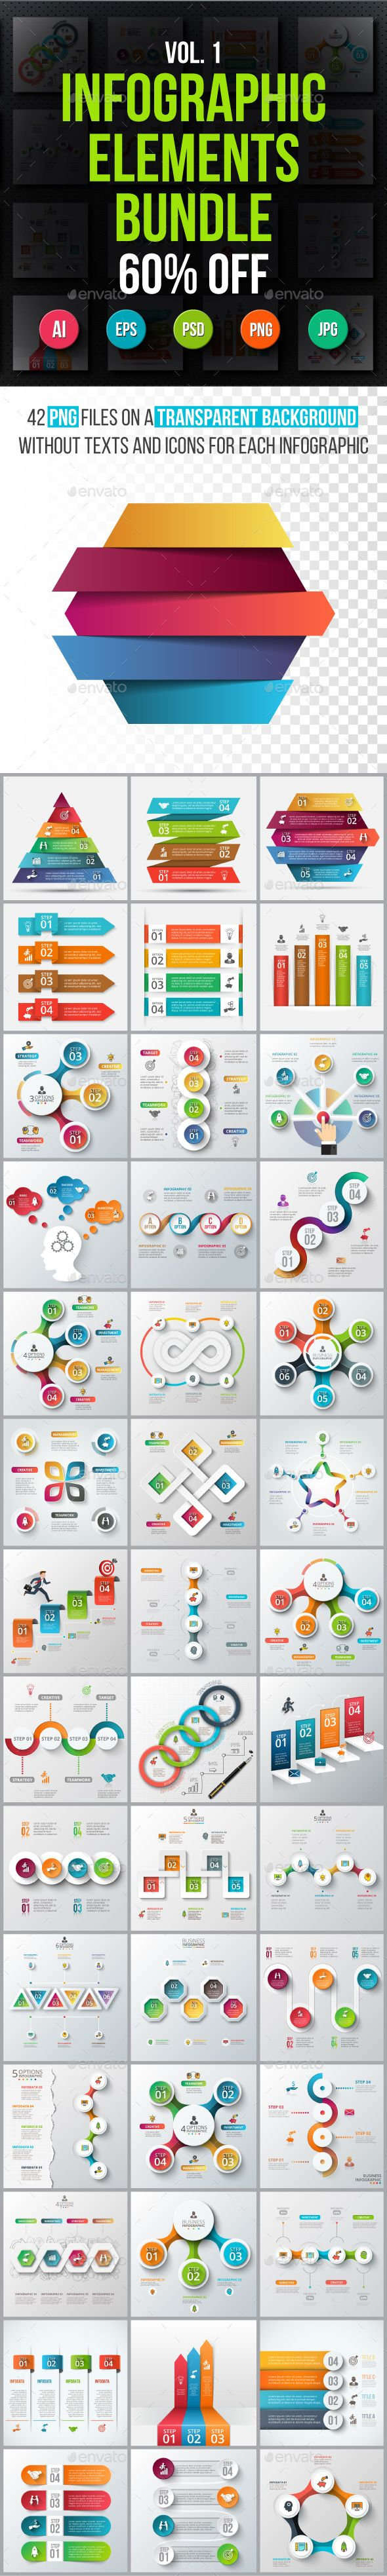 #Infographic elements bundle v.01 - Infographics Download here: https://graphicriver.net/item/infographic-elements-bundle-v01/19583976?ref=alena994